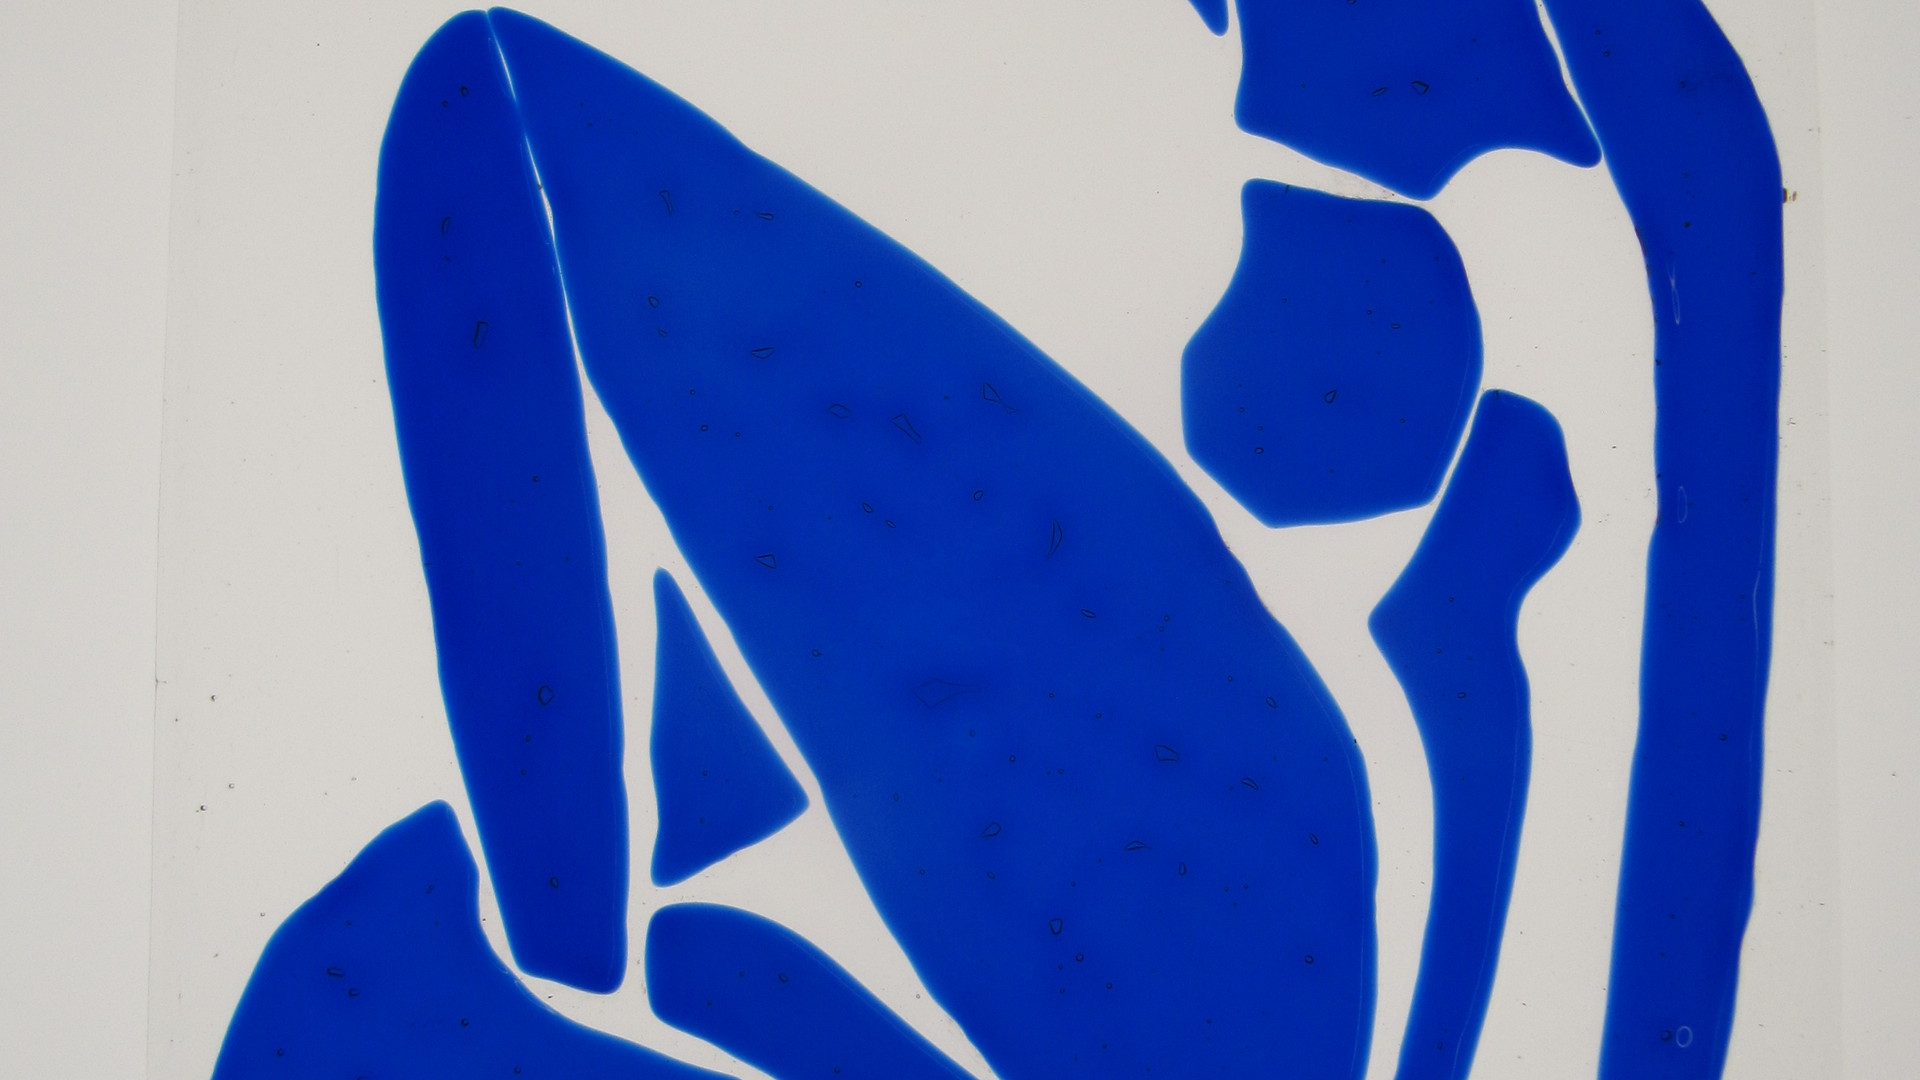 The original Matisse Blue Nude 1